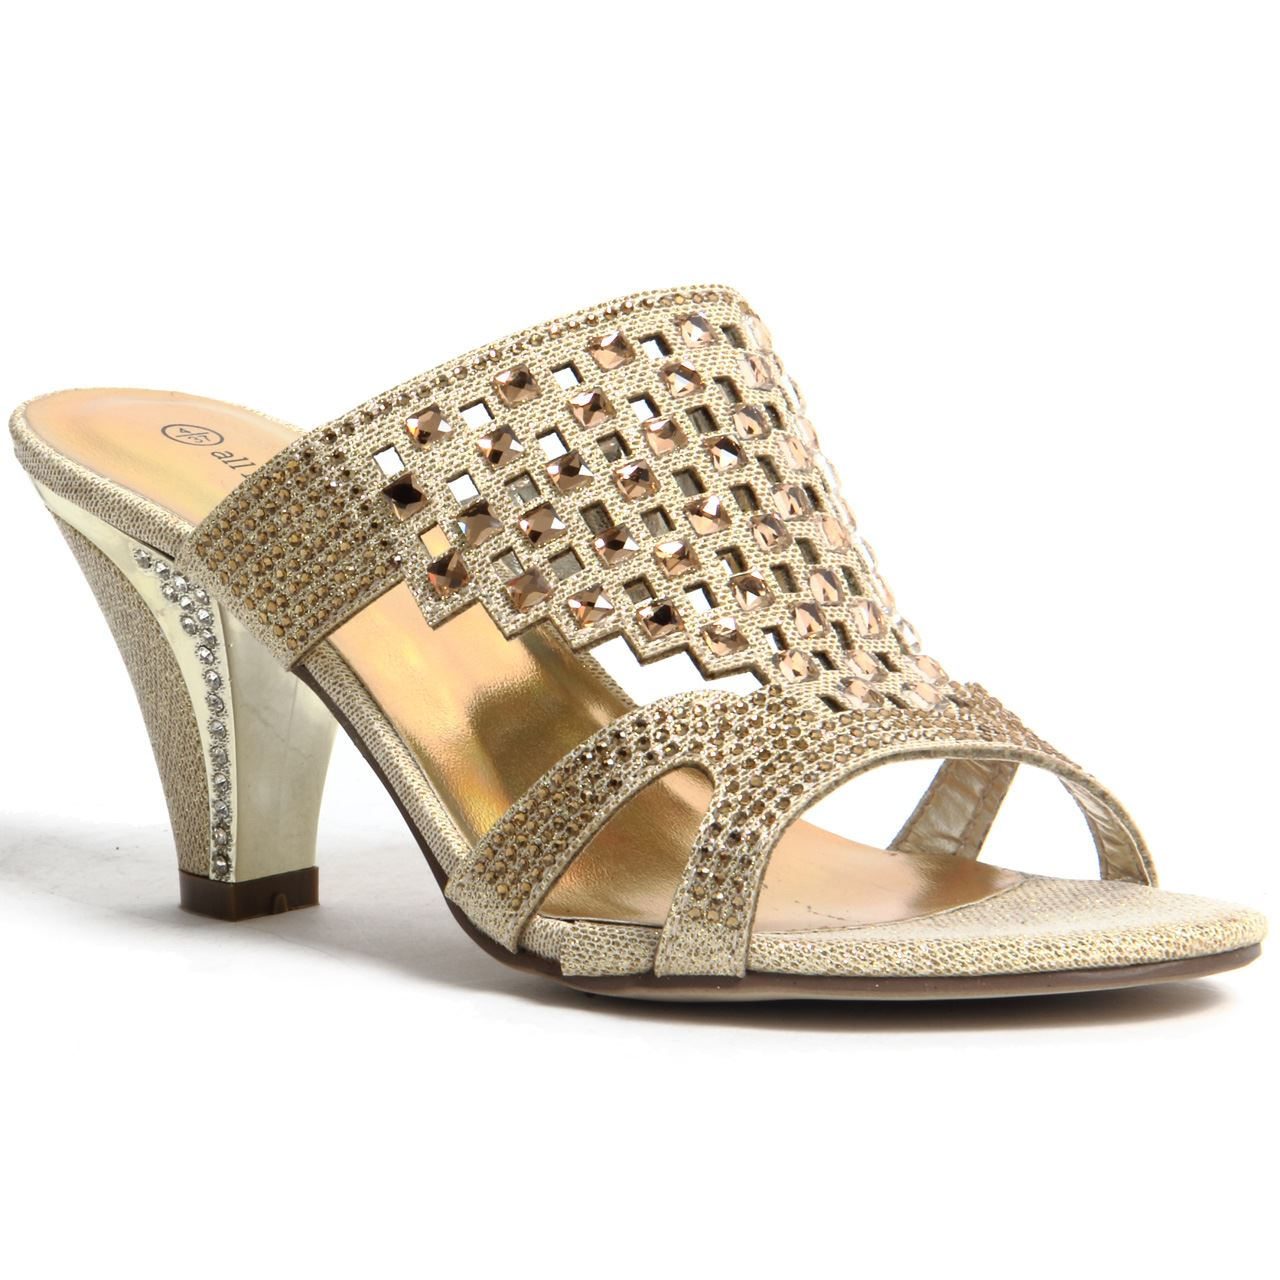 From Flats Sandals to Party Wear Sandals for Ladies Paytm Mall is Here Paytm is a kind of mall where all the varieties and new is incorporated without deviating from the quality standards. Each day is a day to celebrate so just add elegance to the day by having a new collection before everyone gets there.